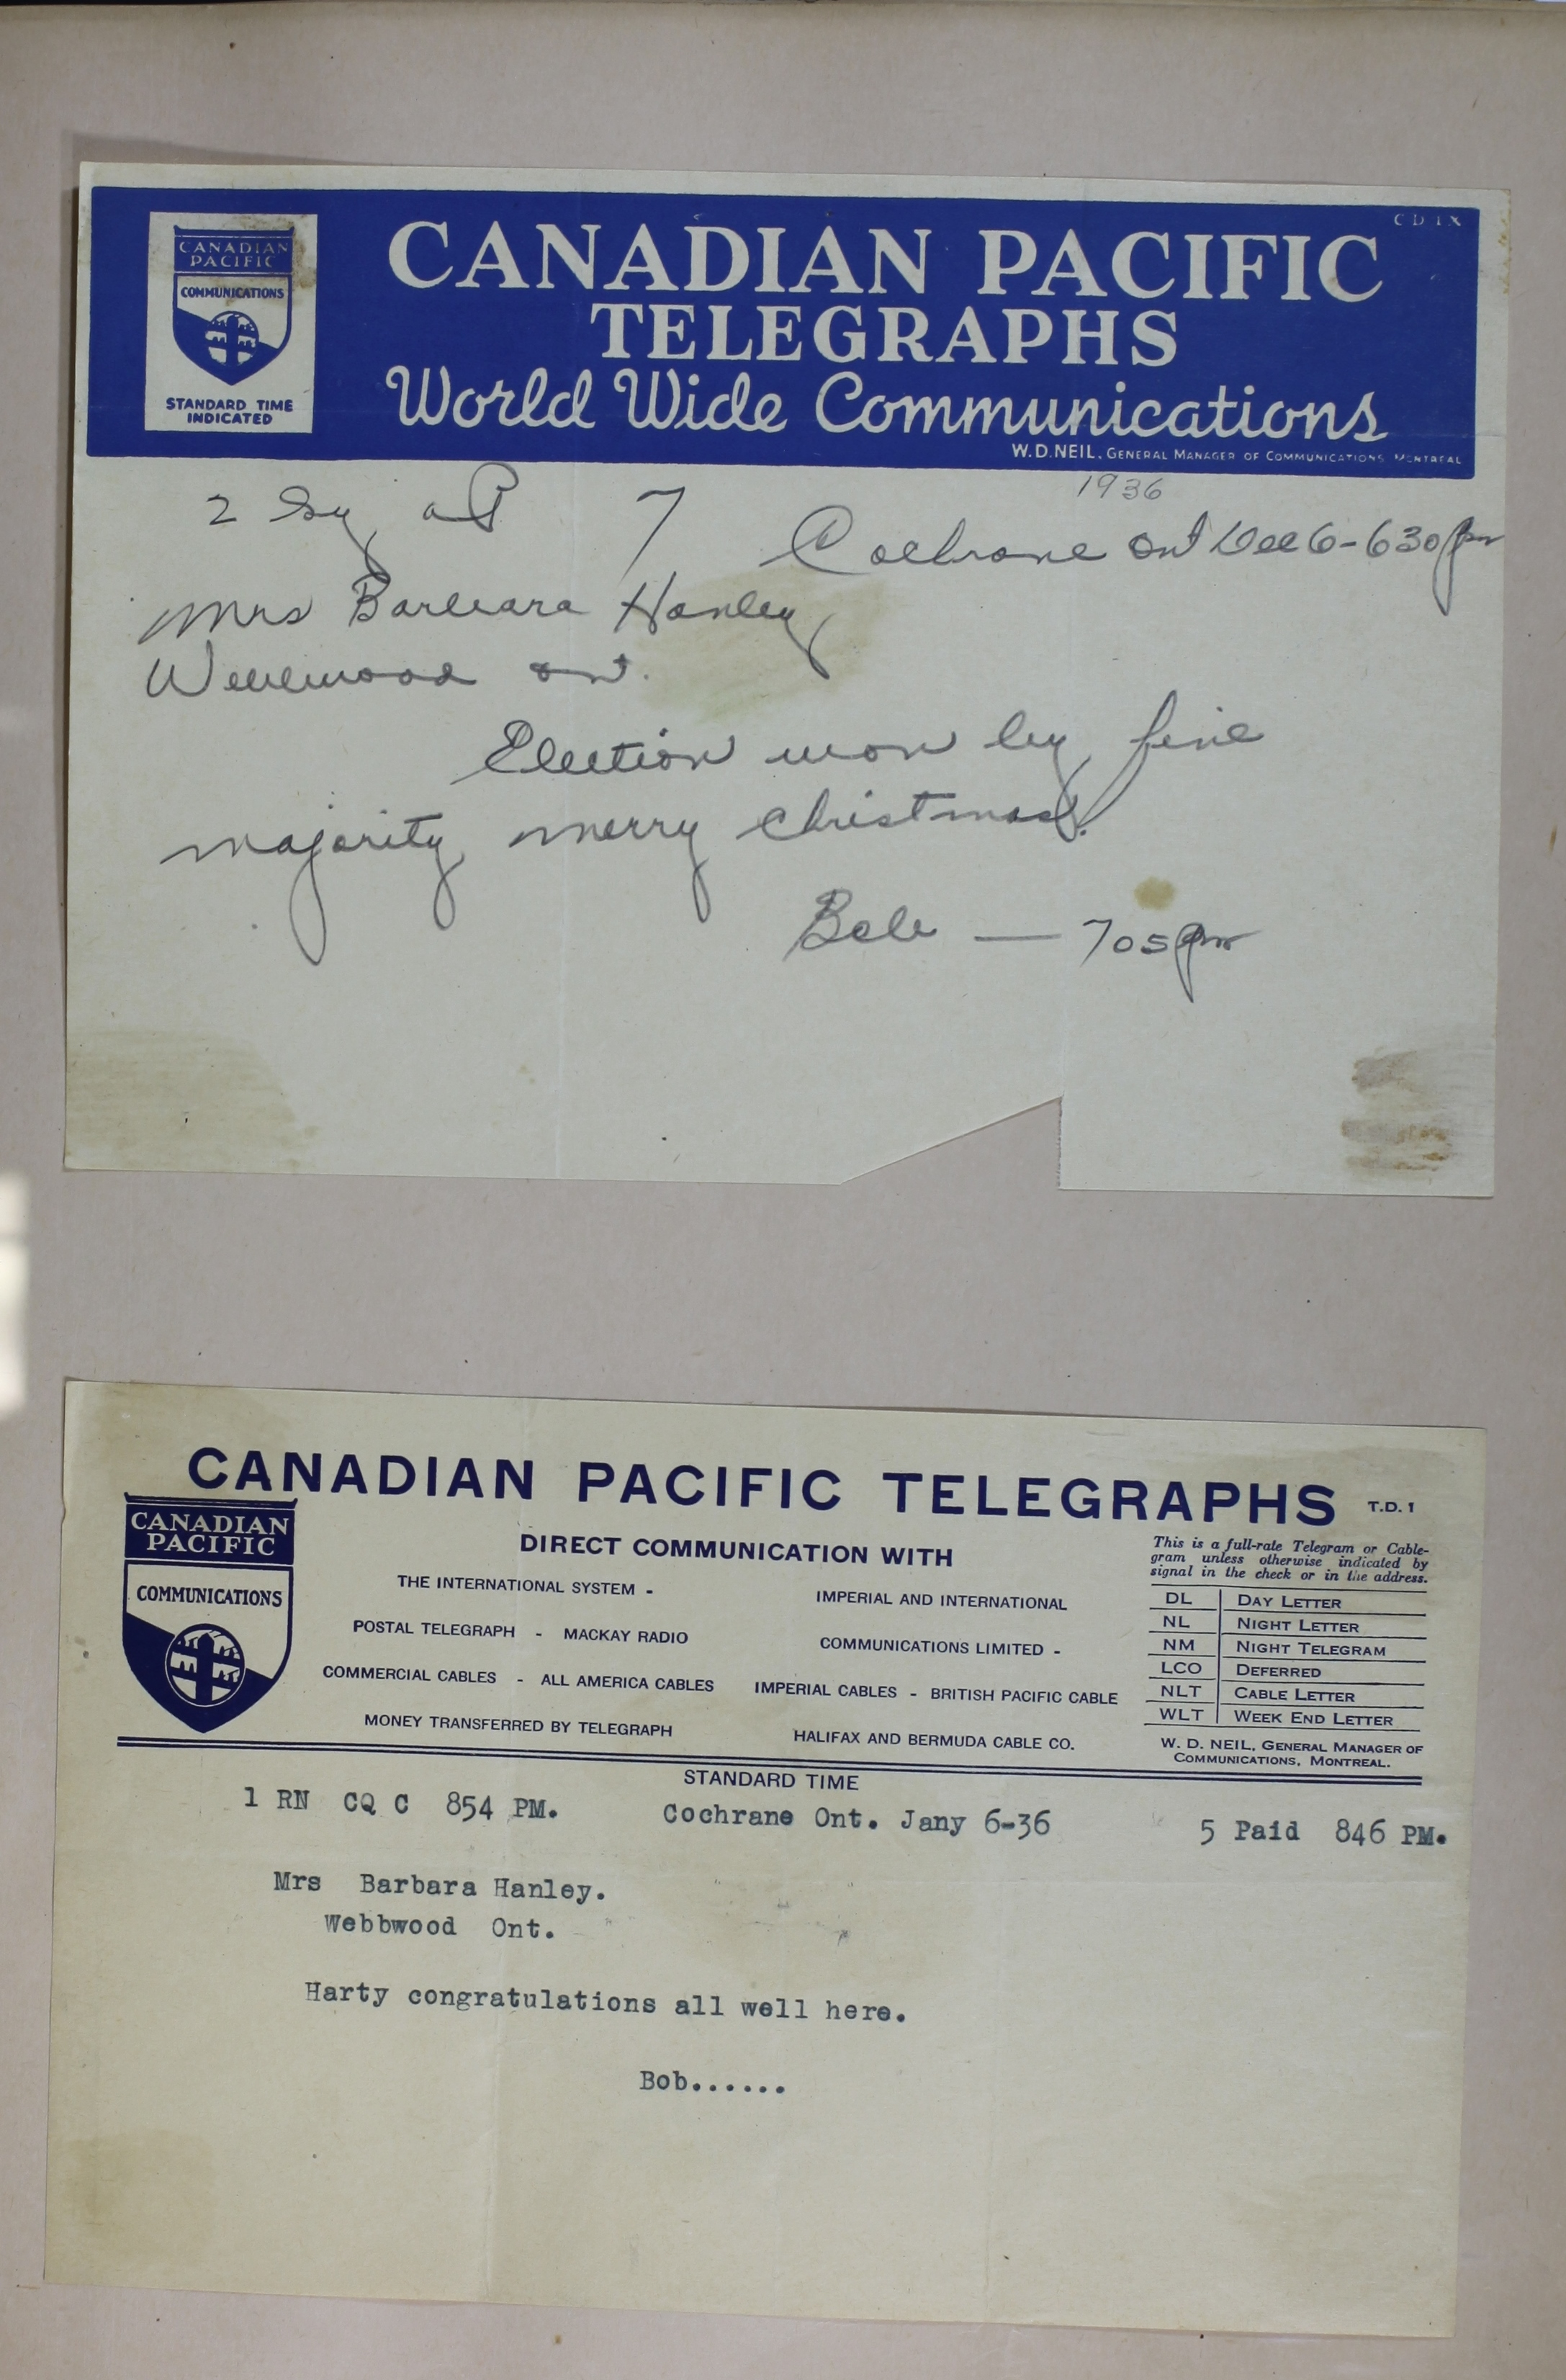 Congratulatory telegram from Hanley